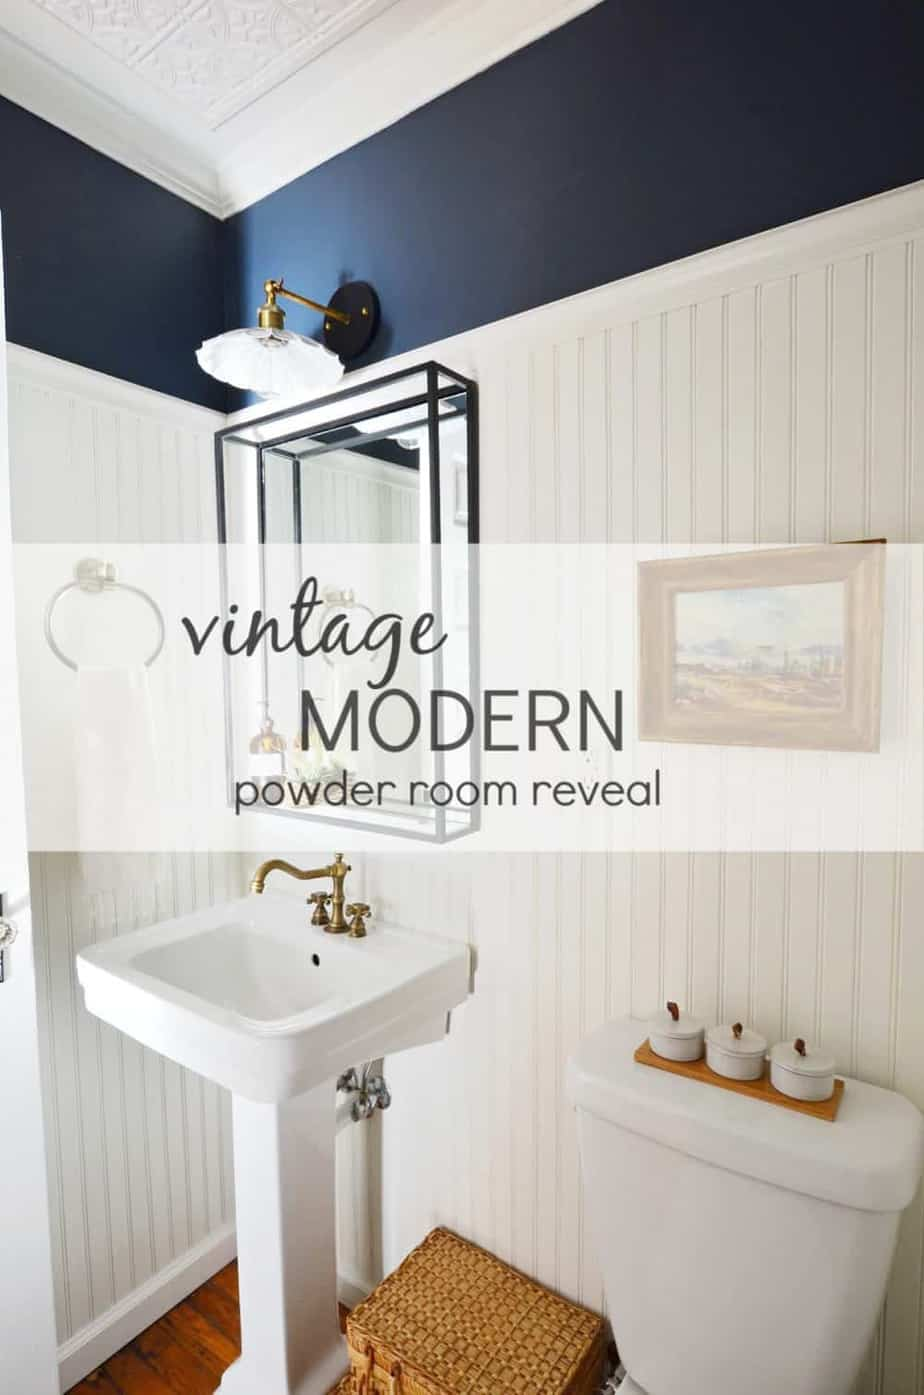 Vintage modern navy powder room reveal